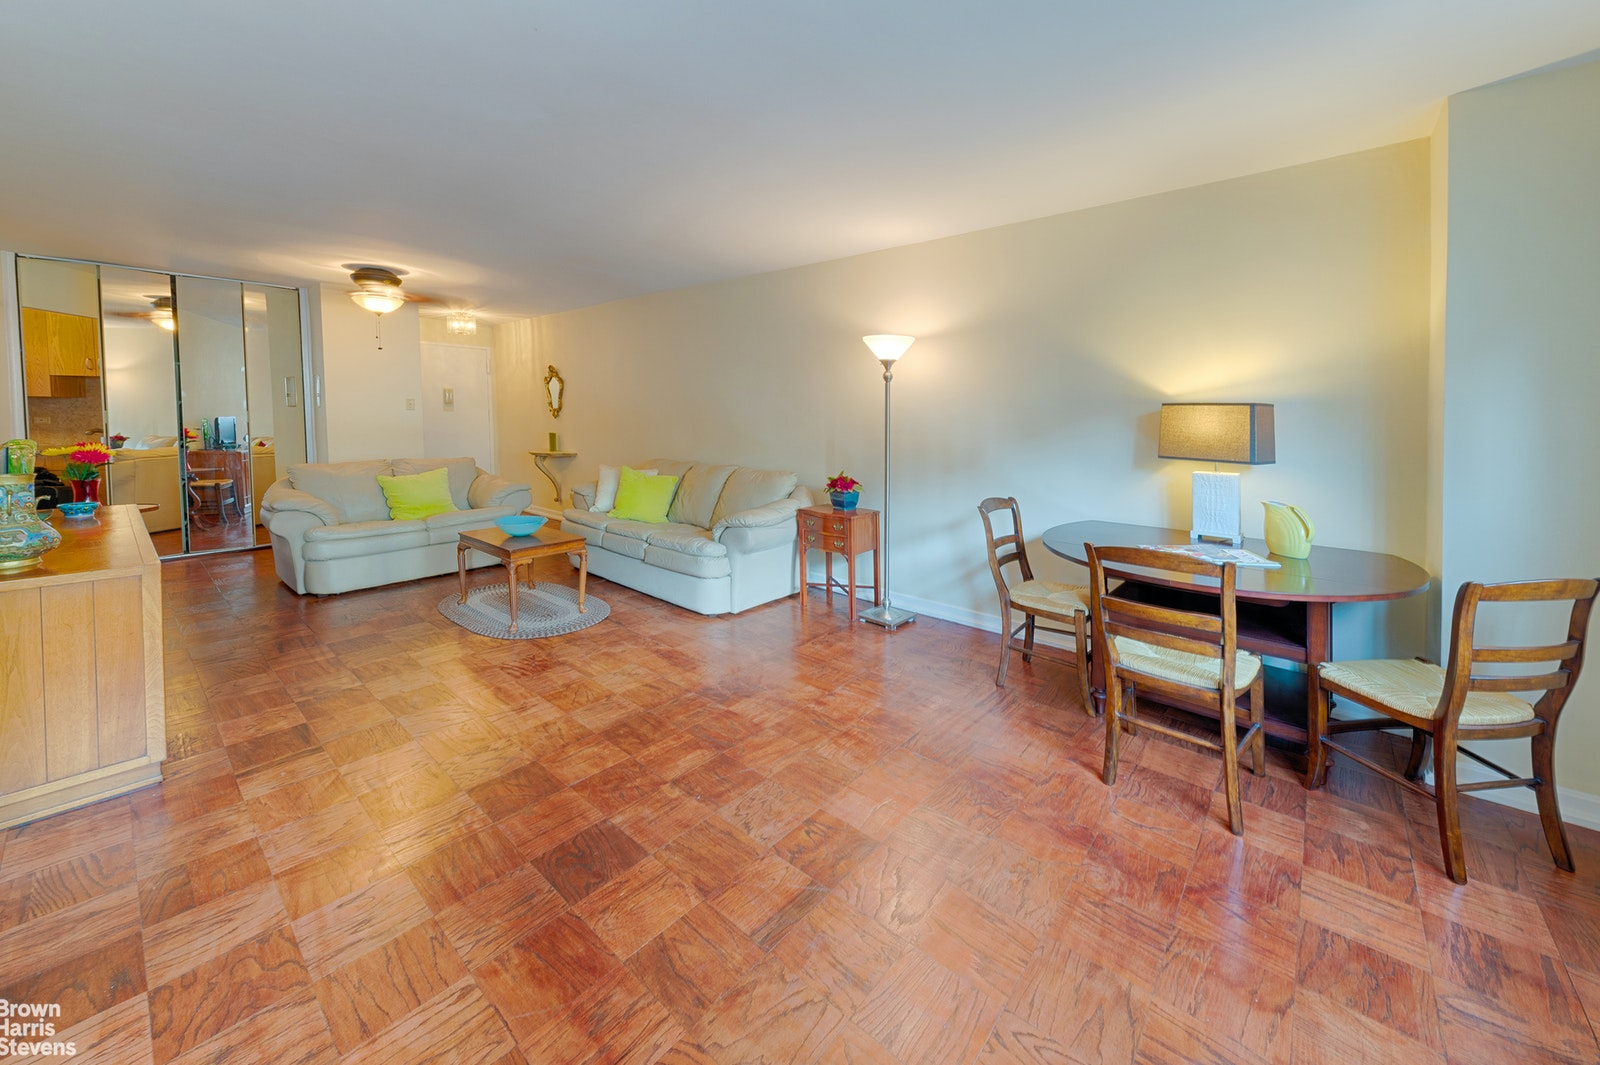 330 Third Avenue 10j, Gramercy Park, NYC, 10010, $535,000, Property For Sale, Halstead Real Estate, Photo 3